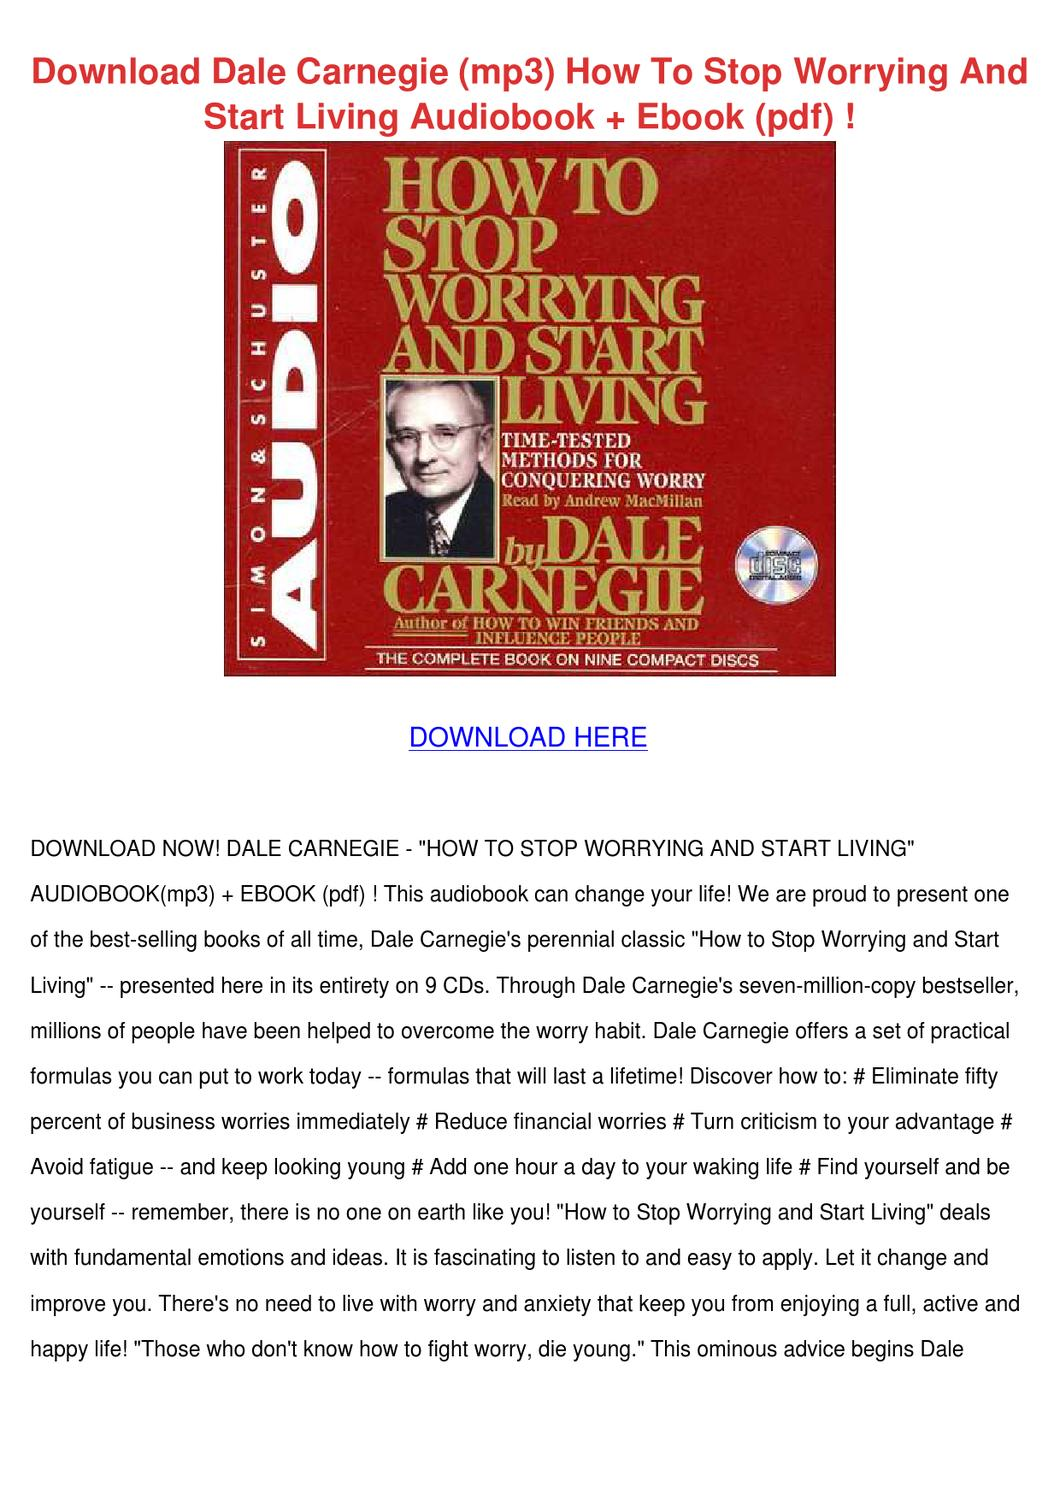 Download Dale Carnegie Mp3 How To Stop Worryi by Karre Giovanelli - issuu